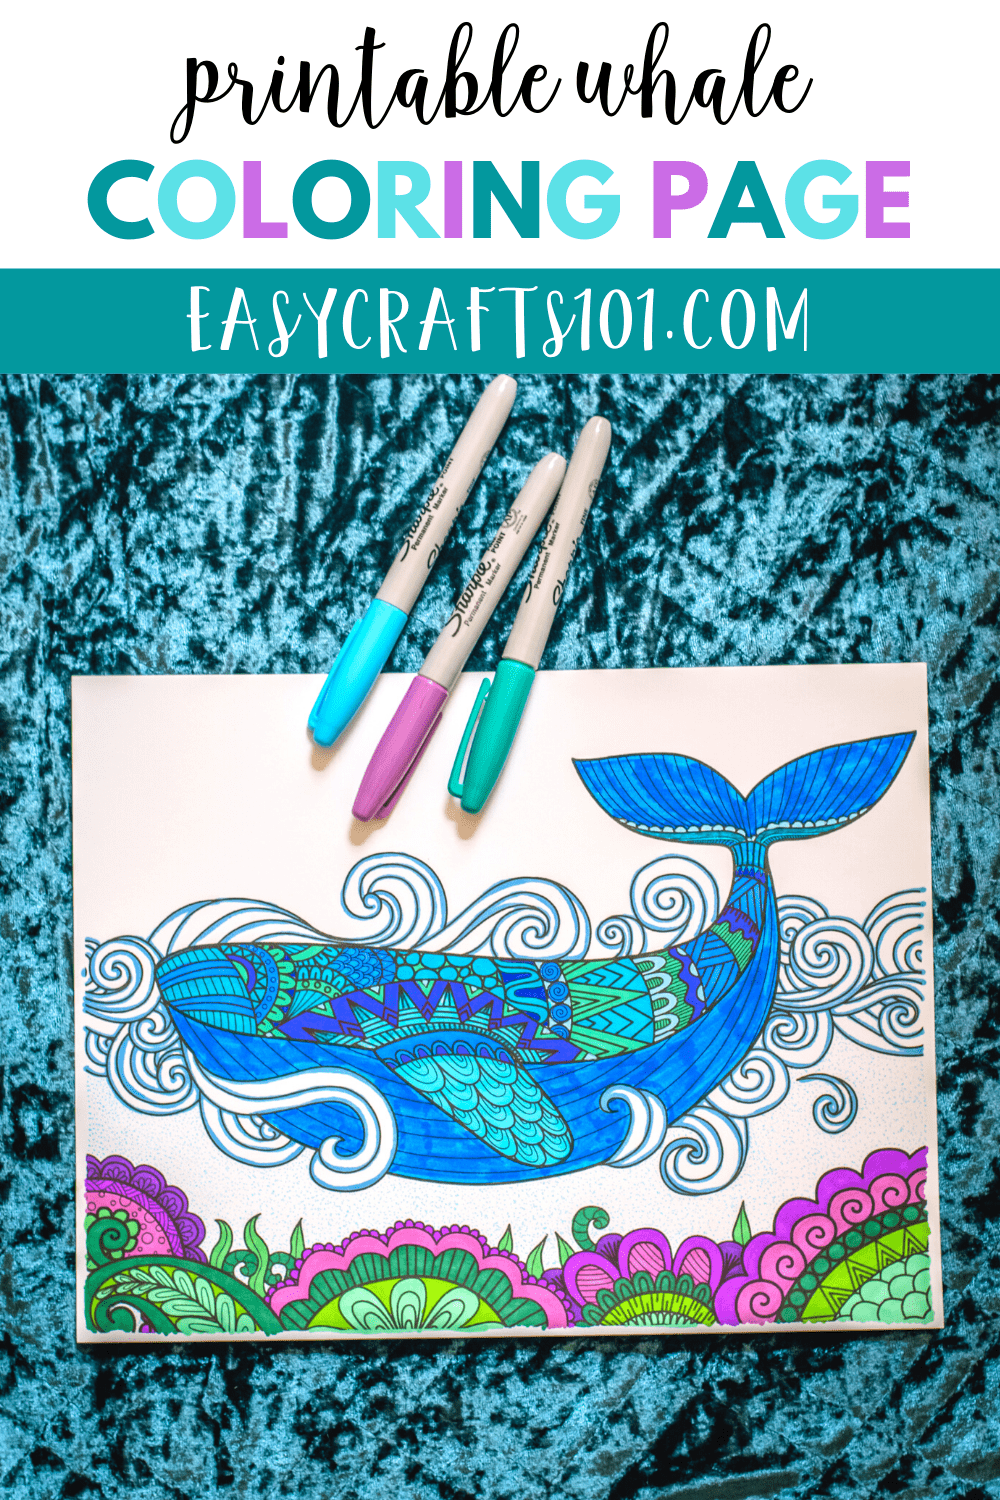 Printable Whale Coloring Page